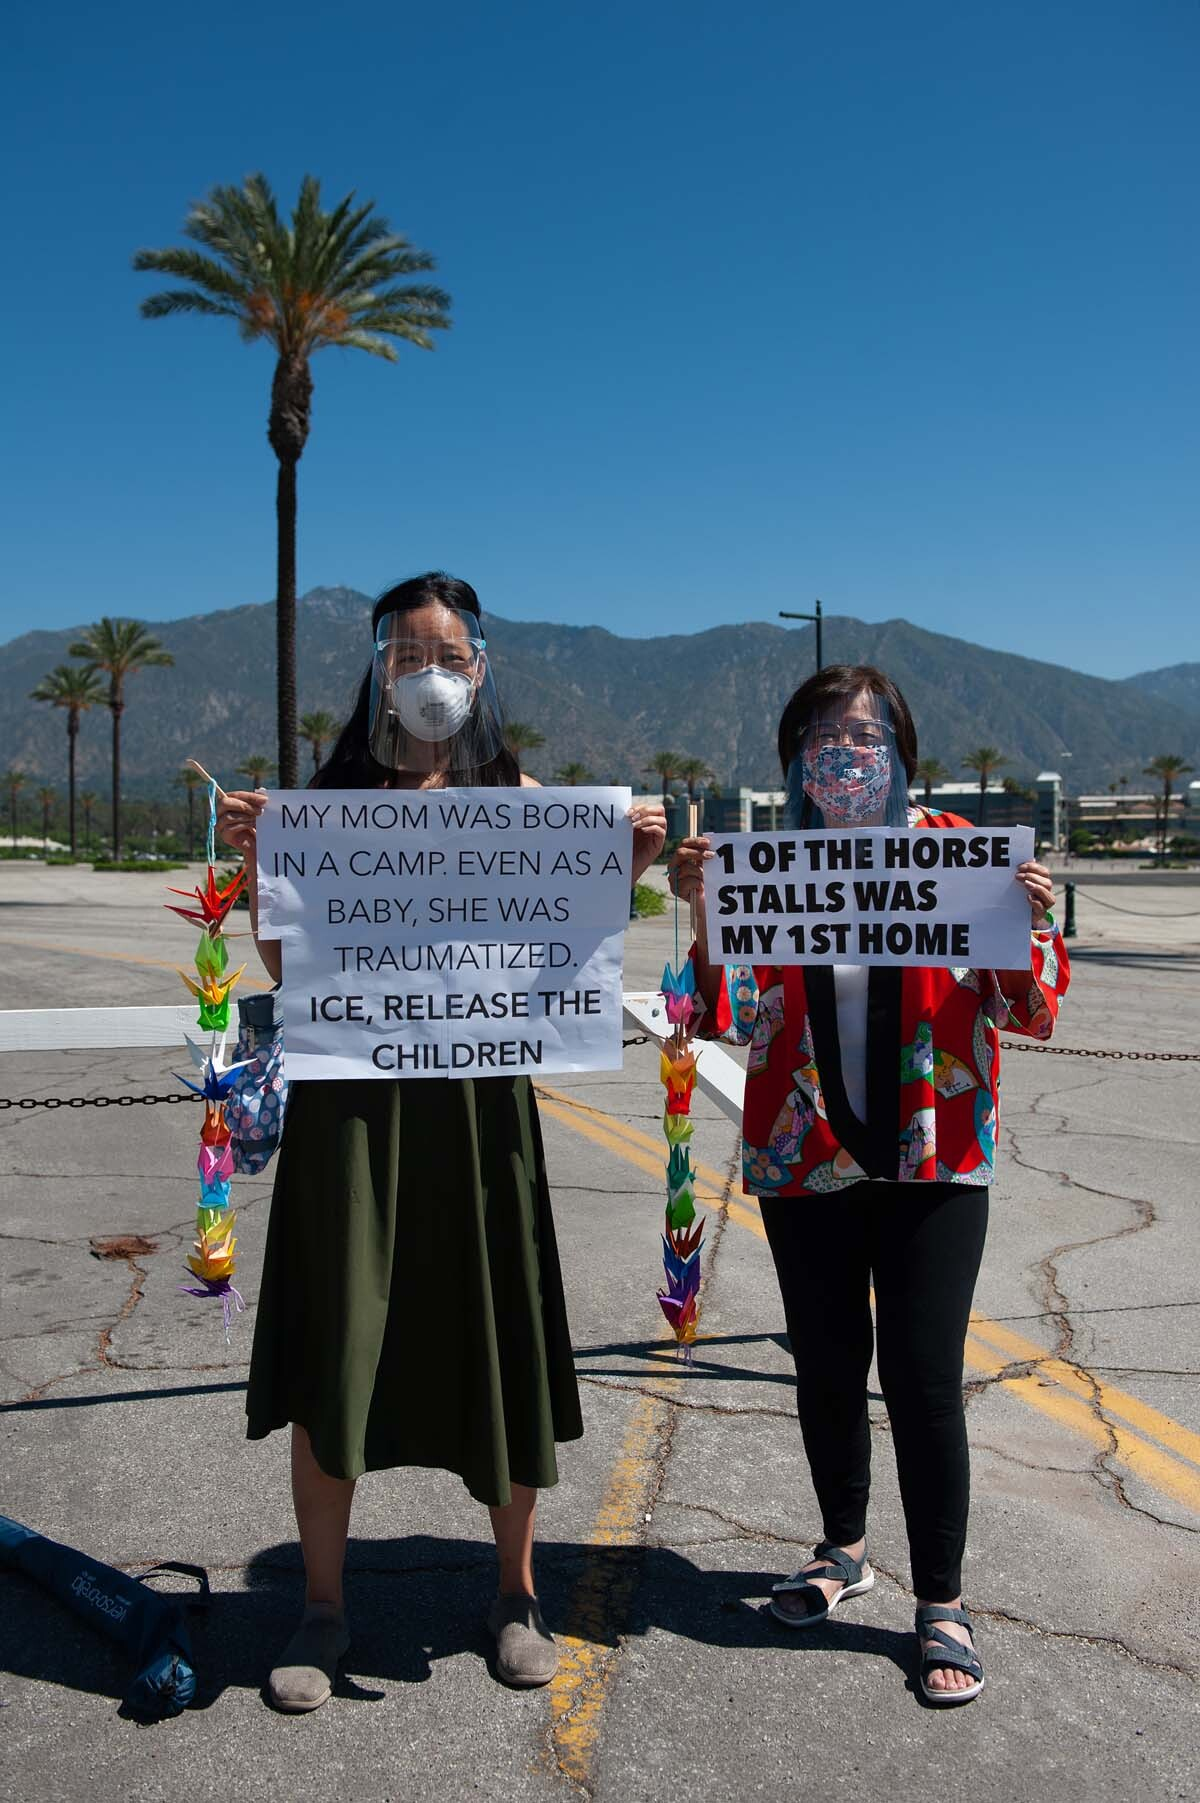 Two women in protest at the Santa Anita Assembly Center | William Camargo, In Plain Sight